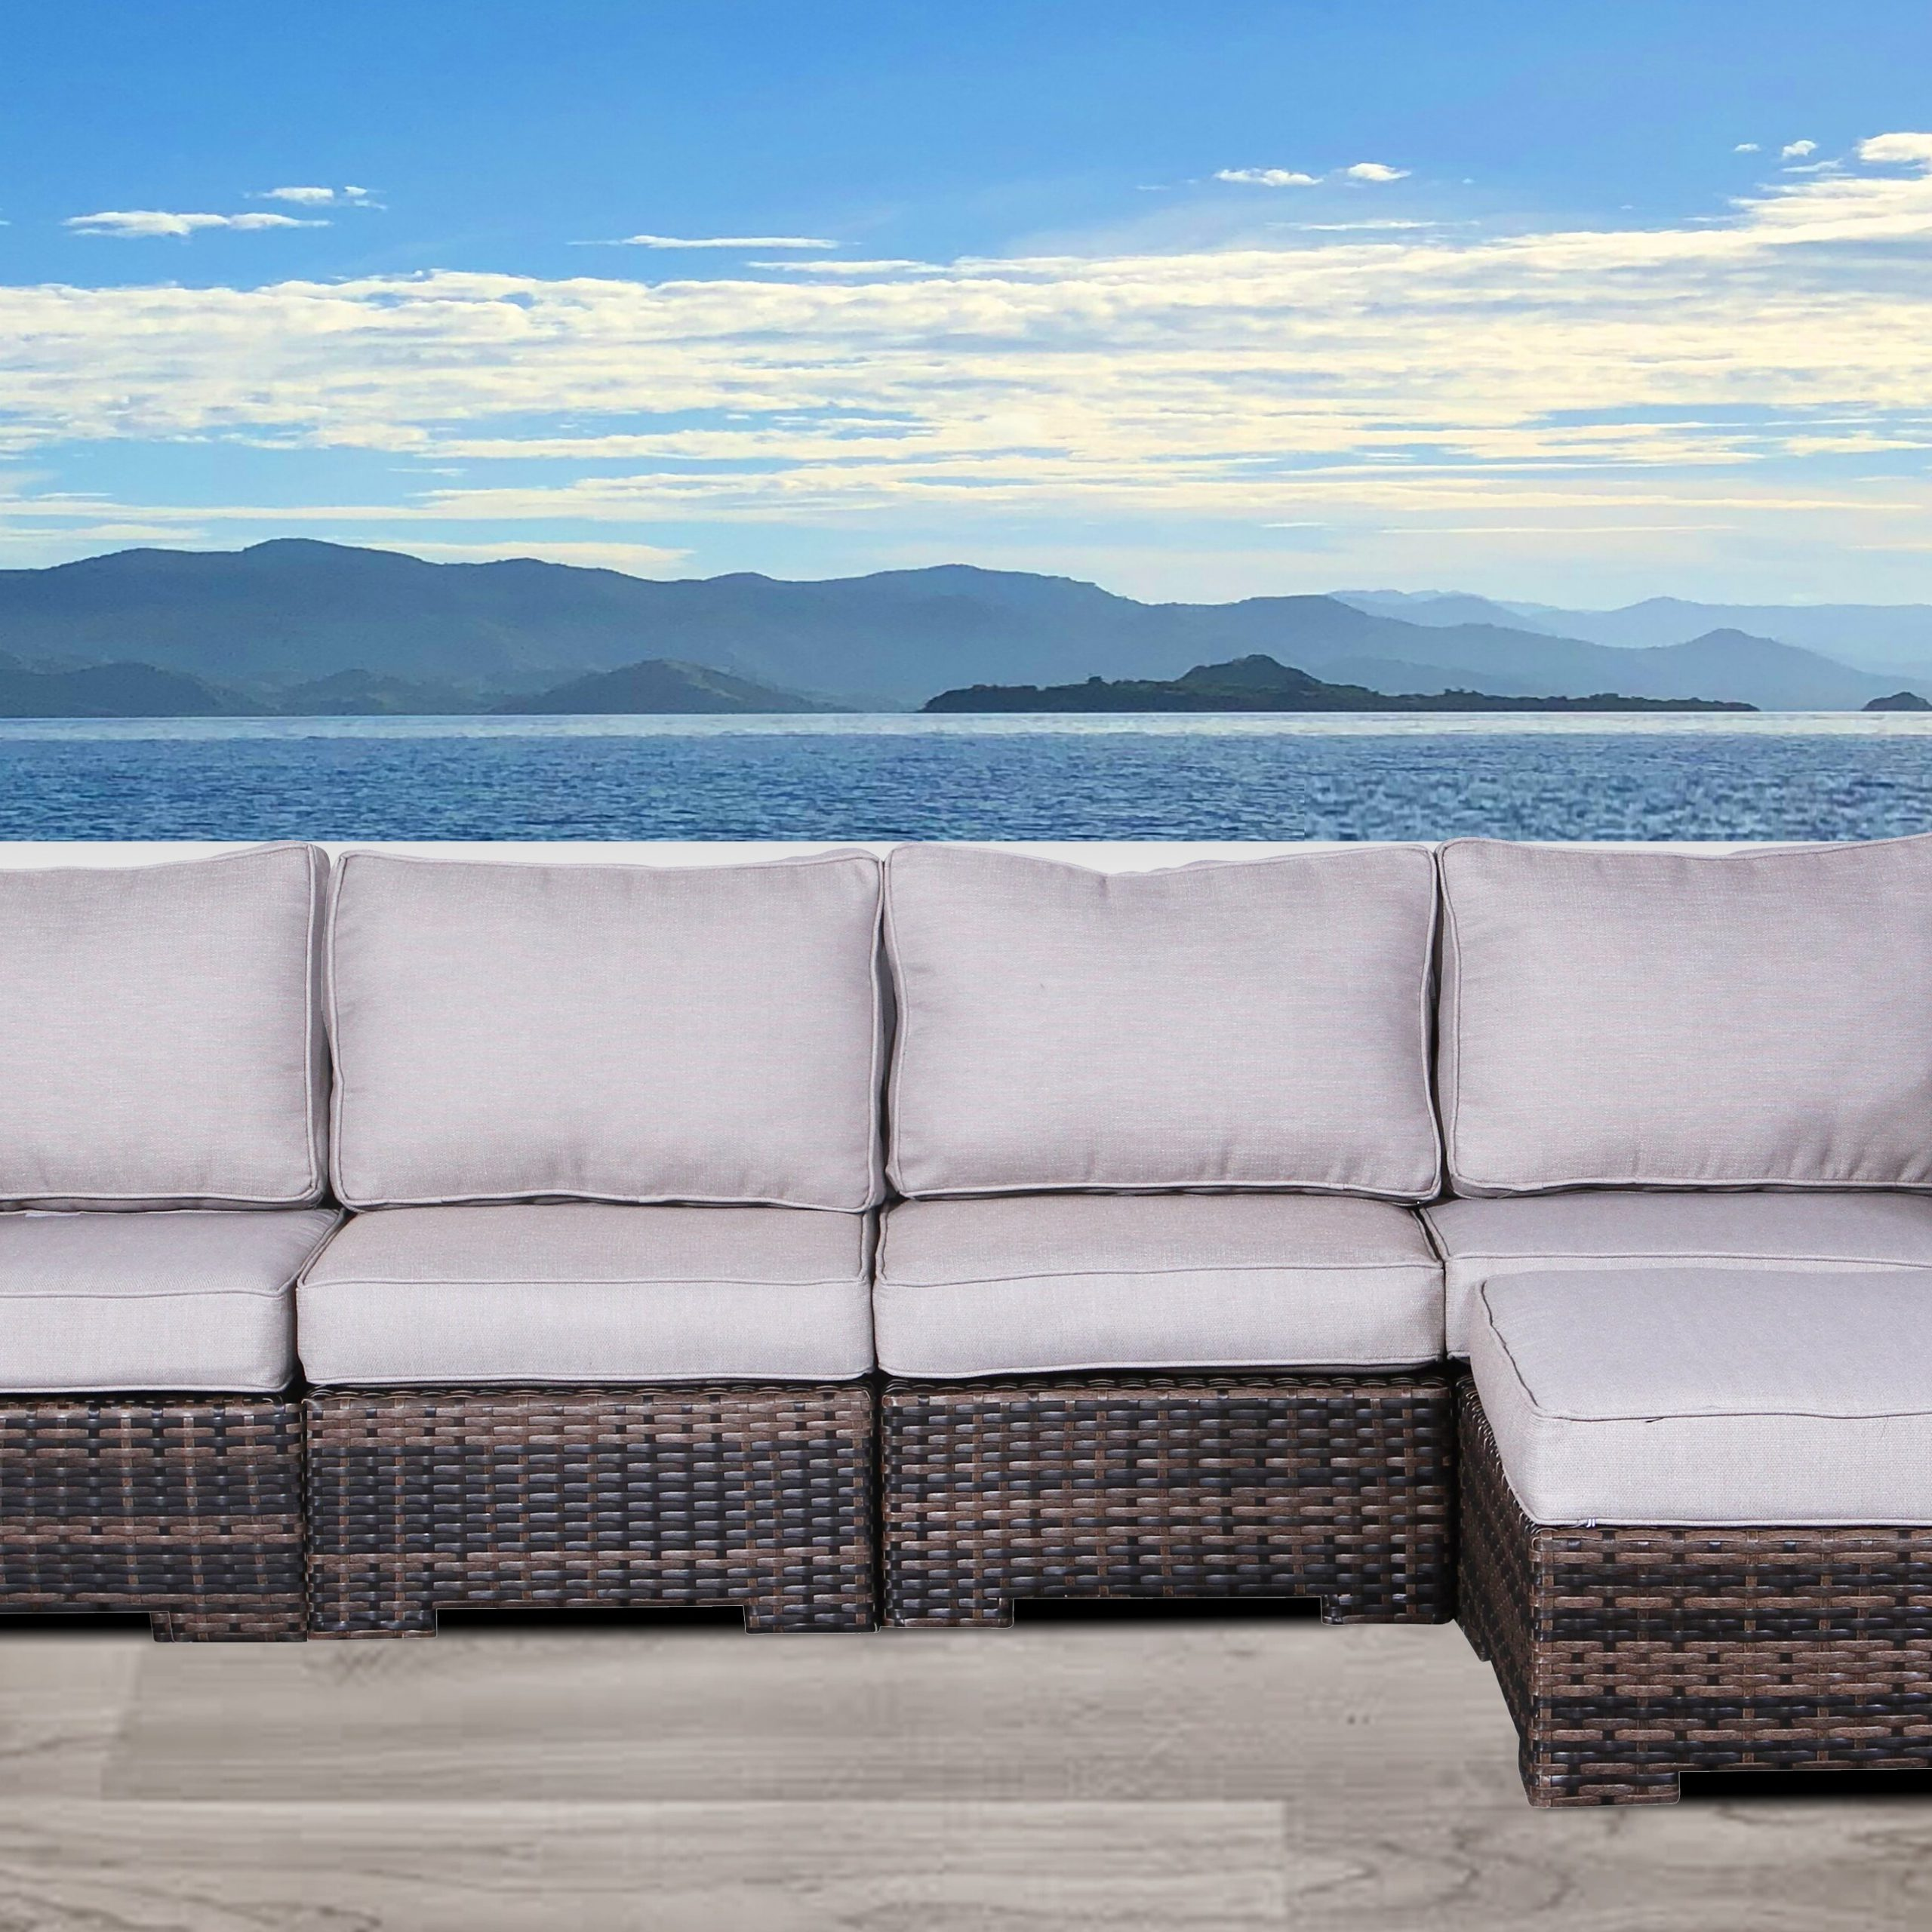 Newest Letona Patio Sectionals With Cushions For Letona Resort Patio Sectional With Cushions (View 2 of 25)